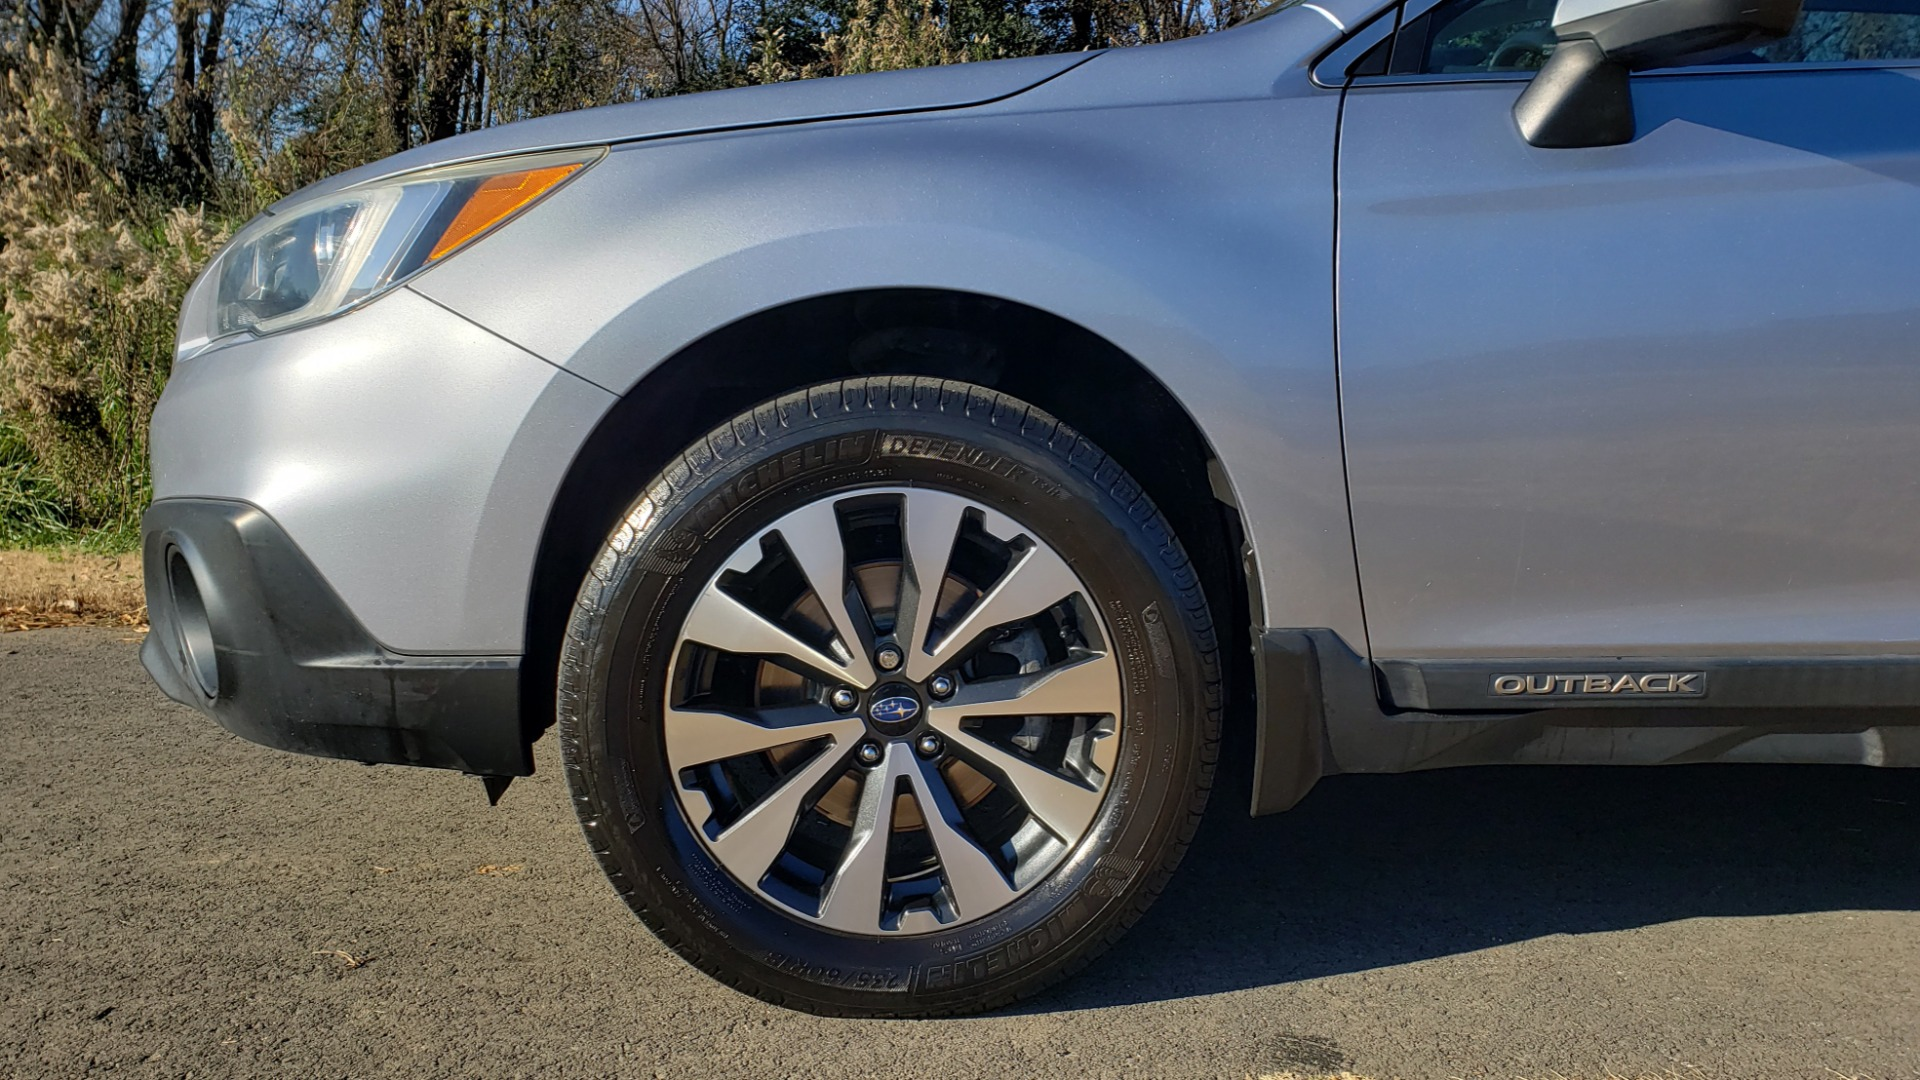 Used 2015 Subaru OUTBACK 2.5I LIMITED / AWD / 2.5L 4-CYL / AUTO / 18IN WHEELS for sale $14,900 at Formula Imports in Charlotte NC 28227 74